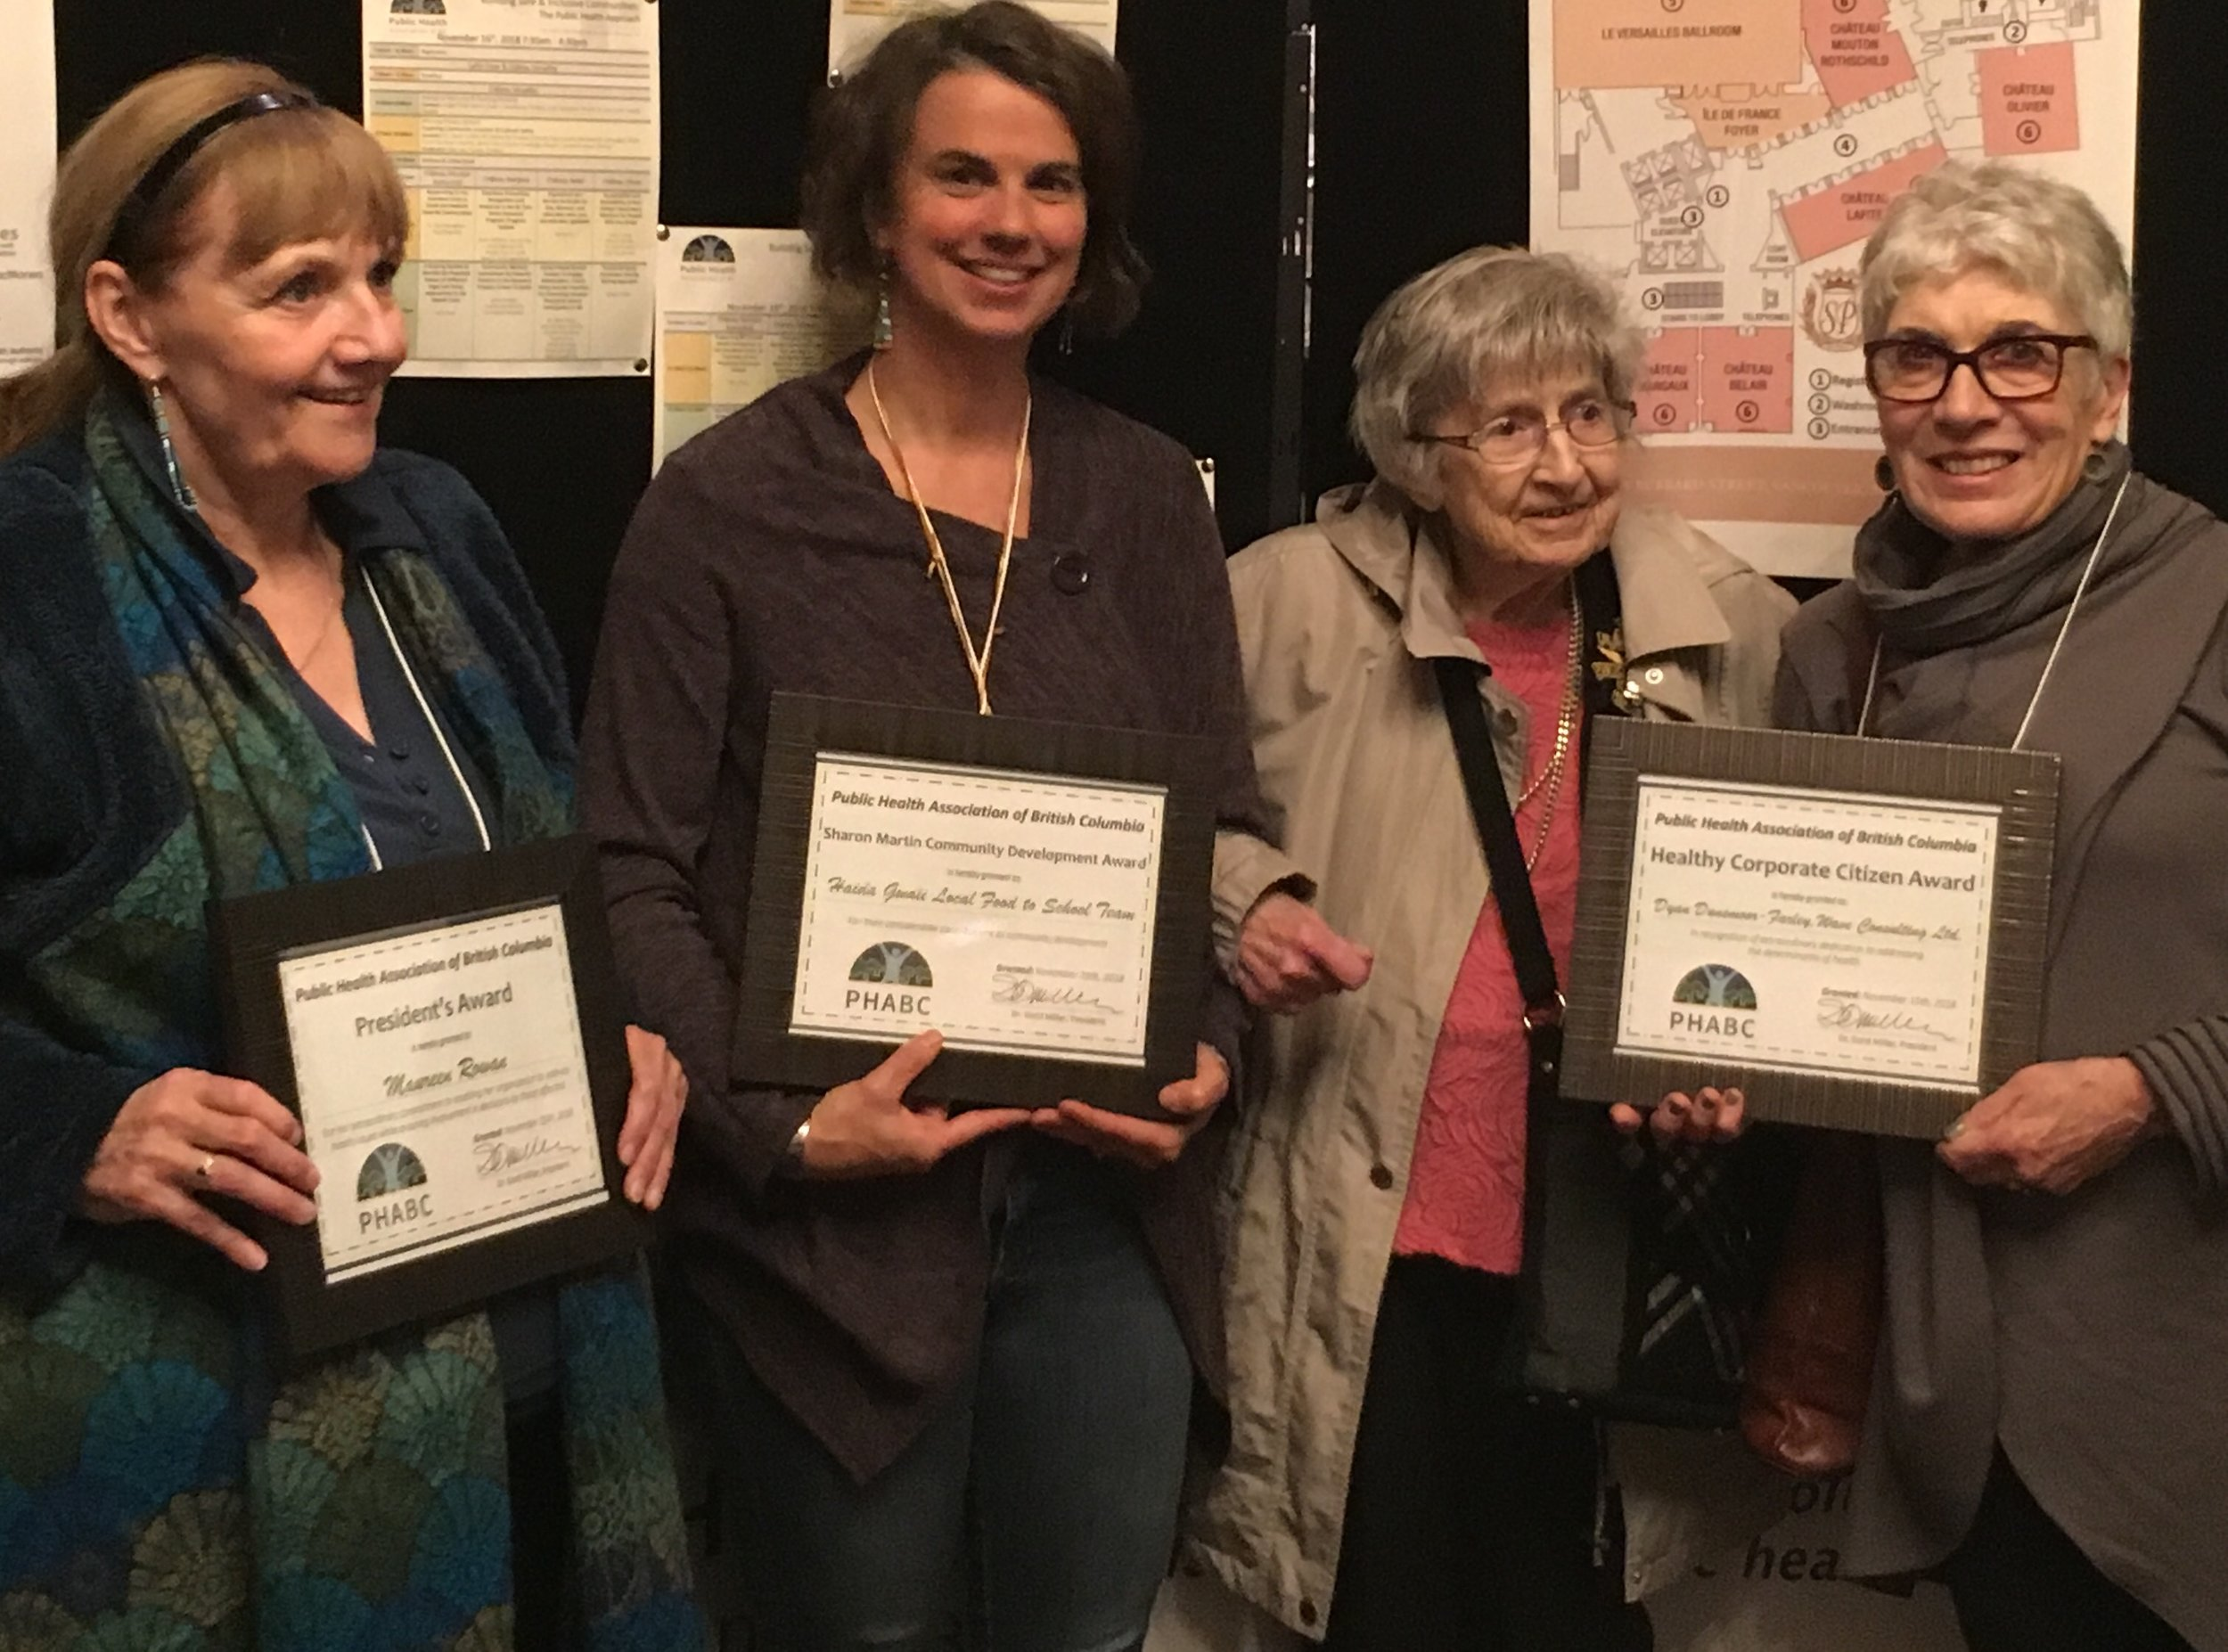 2018 PHABC Award winners (from left to right): Maureen Rowan from PHABC received the President's Award; Shelley Crack, community nutritionist and community capacity builder from Haida Gwaii received the Sharon Martin Community Development Award; 103-yr old Bertha Loewen received the Phyllis M. Baird Memorial Award for her lengthy service as a public health nurse in BC; Dyan Dunsmoor-Farley, Managing Director of Wave Consulting, received the Healthy Corporate Citizen Award for her extraordinary dedication to addressing the determinants of health; and Dr. James Frankish (missing from photo) received the Award of Merit for his prolific research and promotion of healthy Canadians.